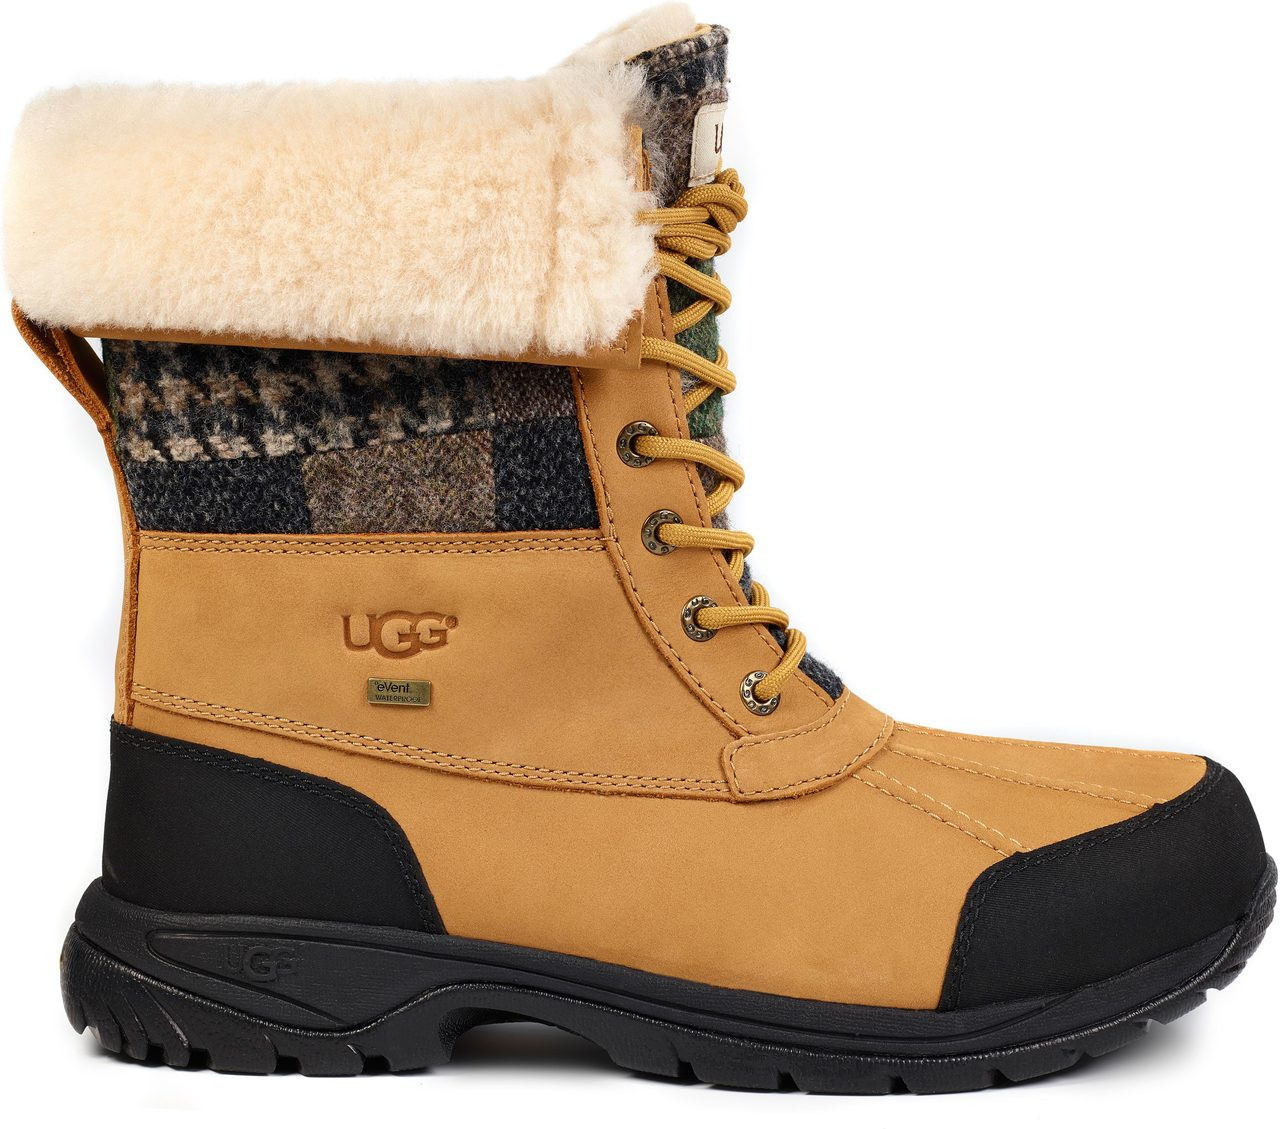 f23b98eef68 Images of How To Wear Ugg Boots For Men - #SpaceHero